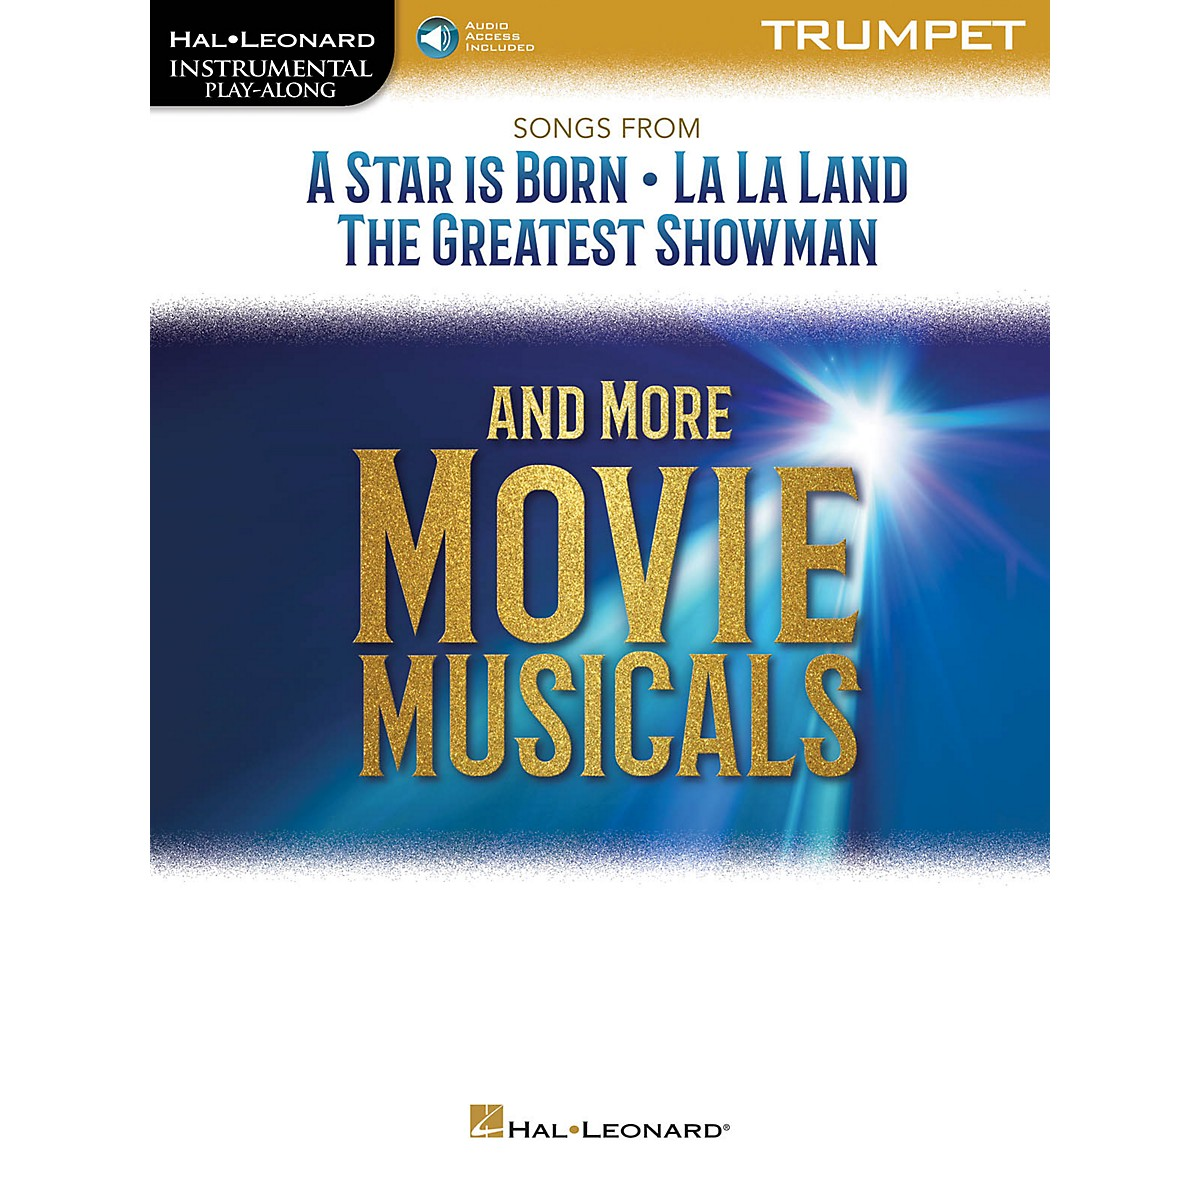 Hal Leonard Songs from A Star Is Born, La La Land and The Greatest Showman Instrumental Play-Along for Trumpet Book/Audio Online